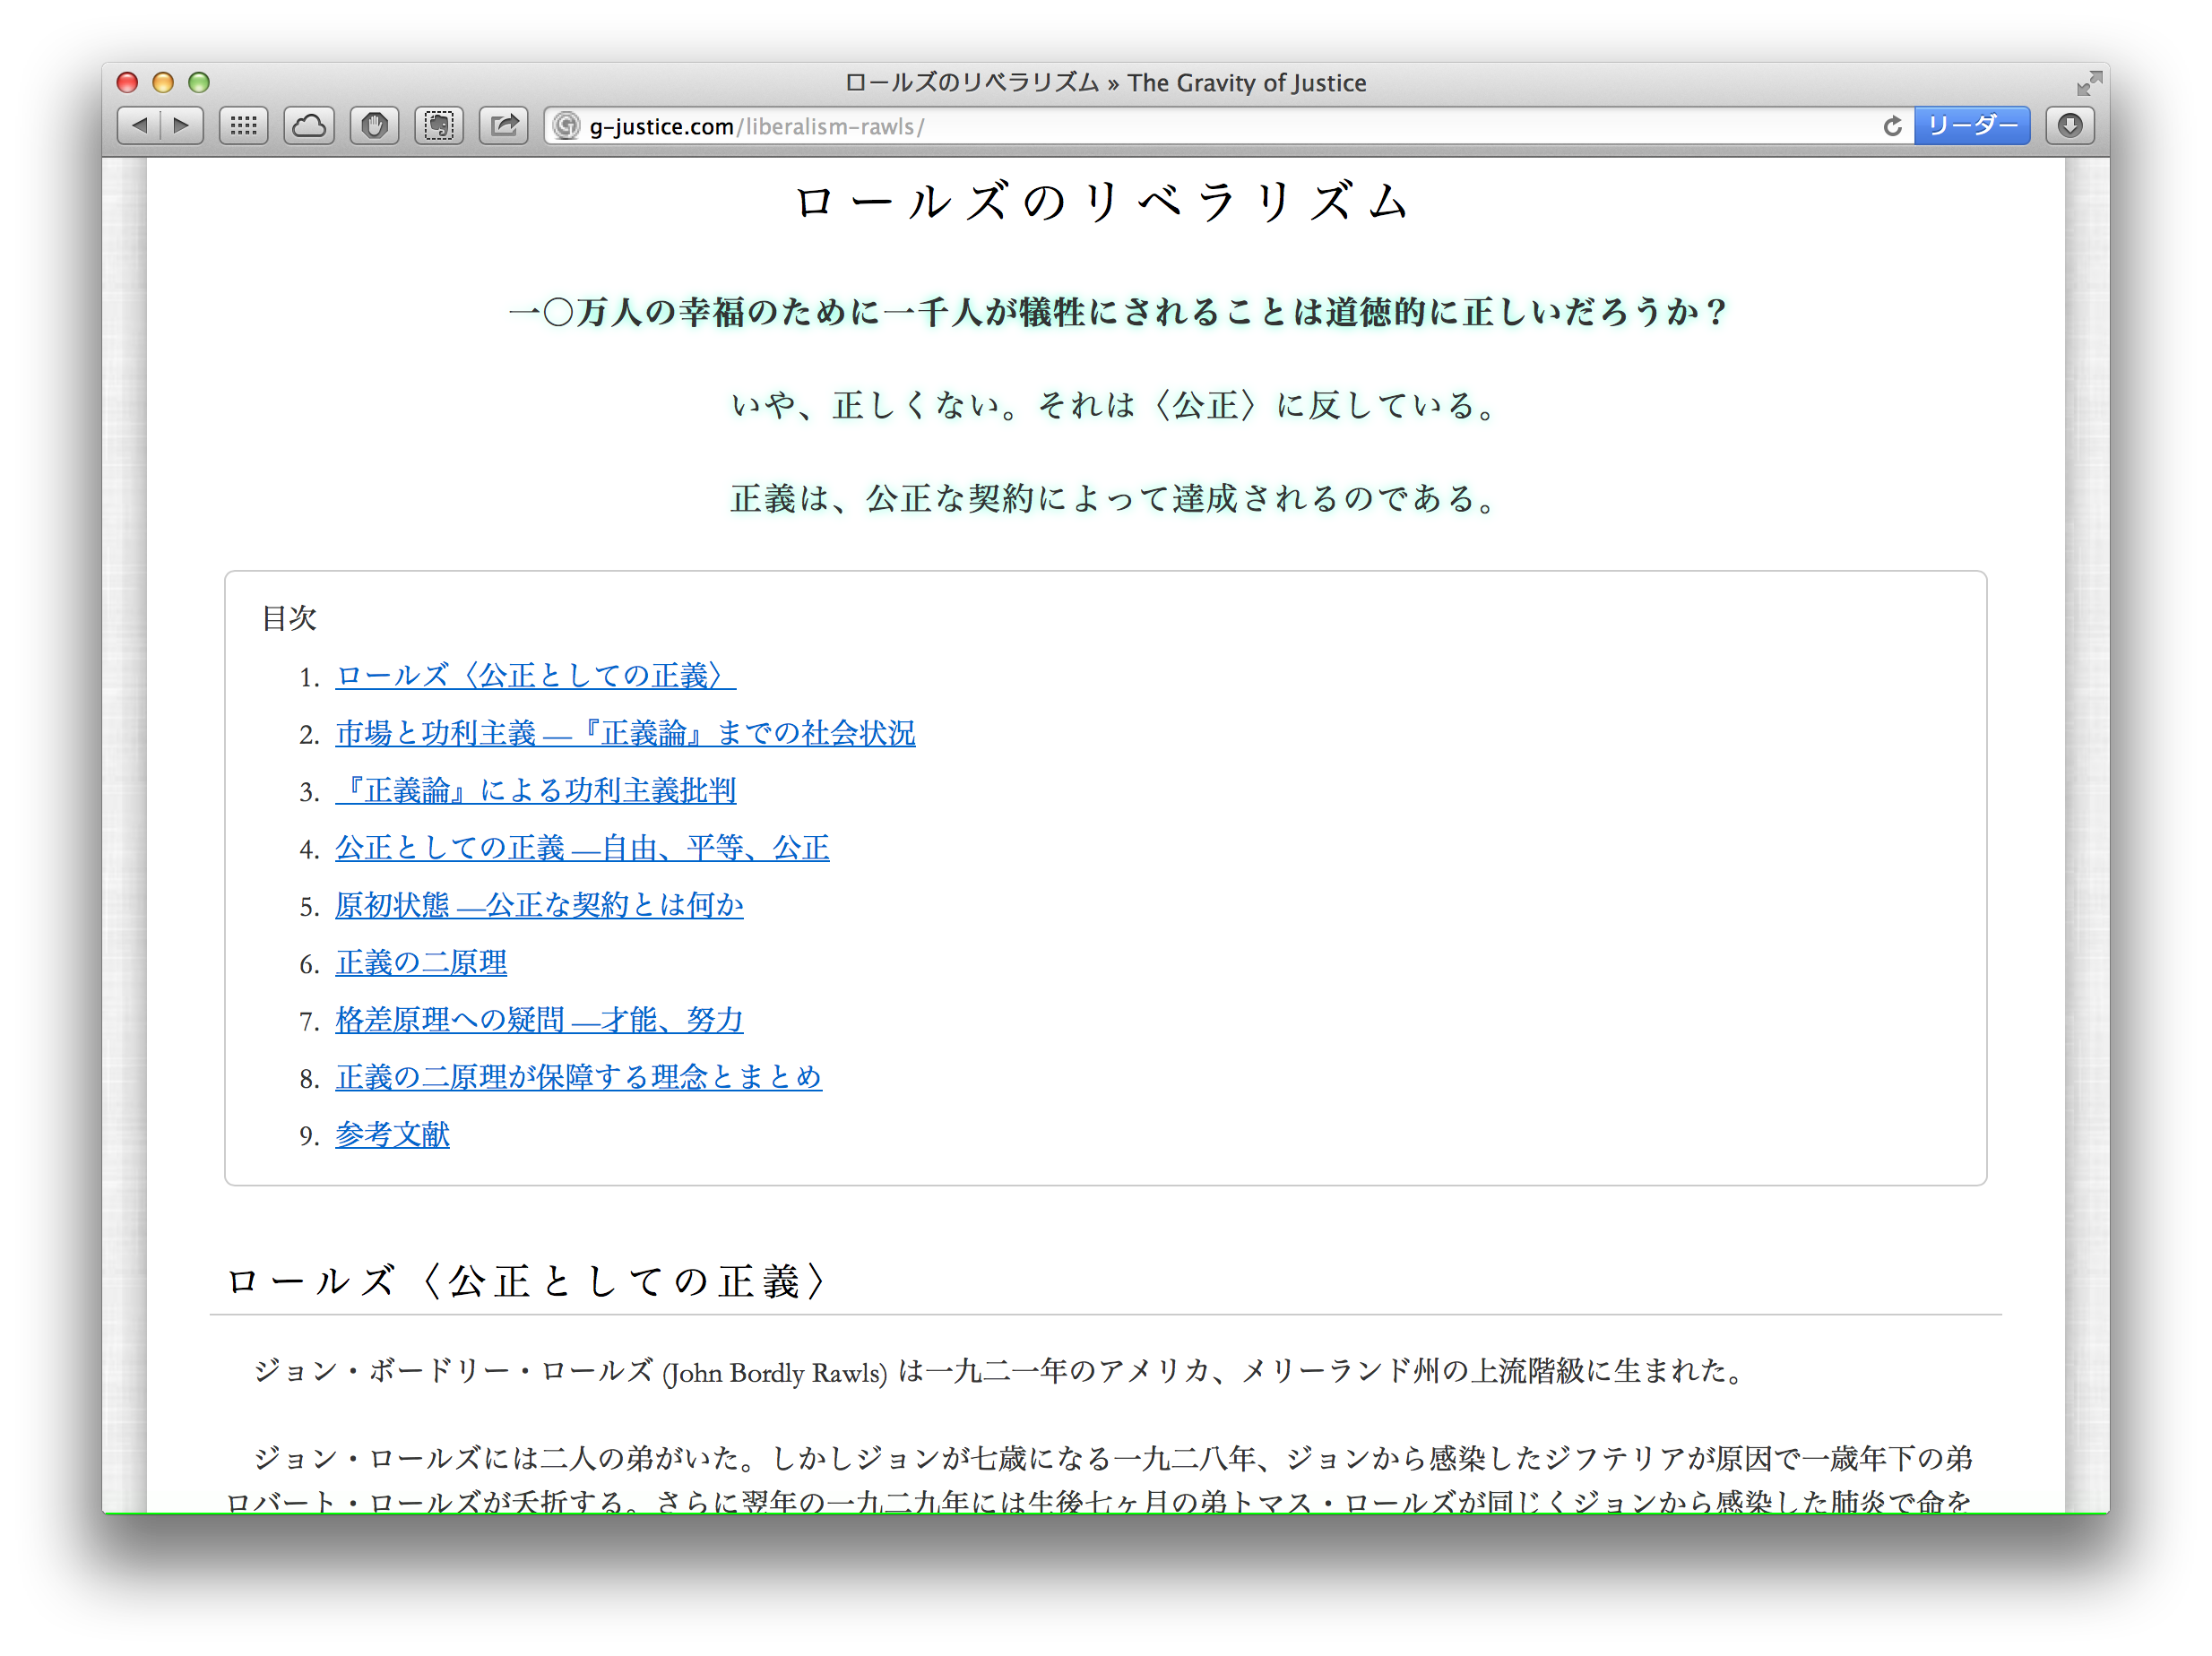 Mac OS X、Safari 6での表示例